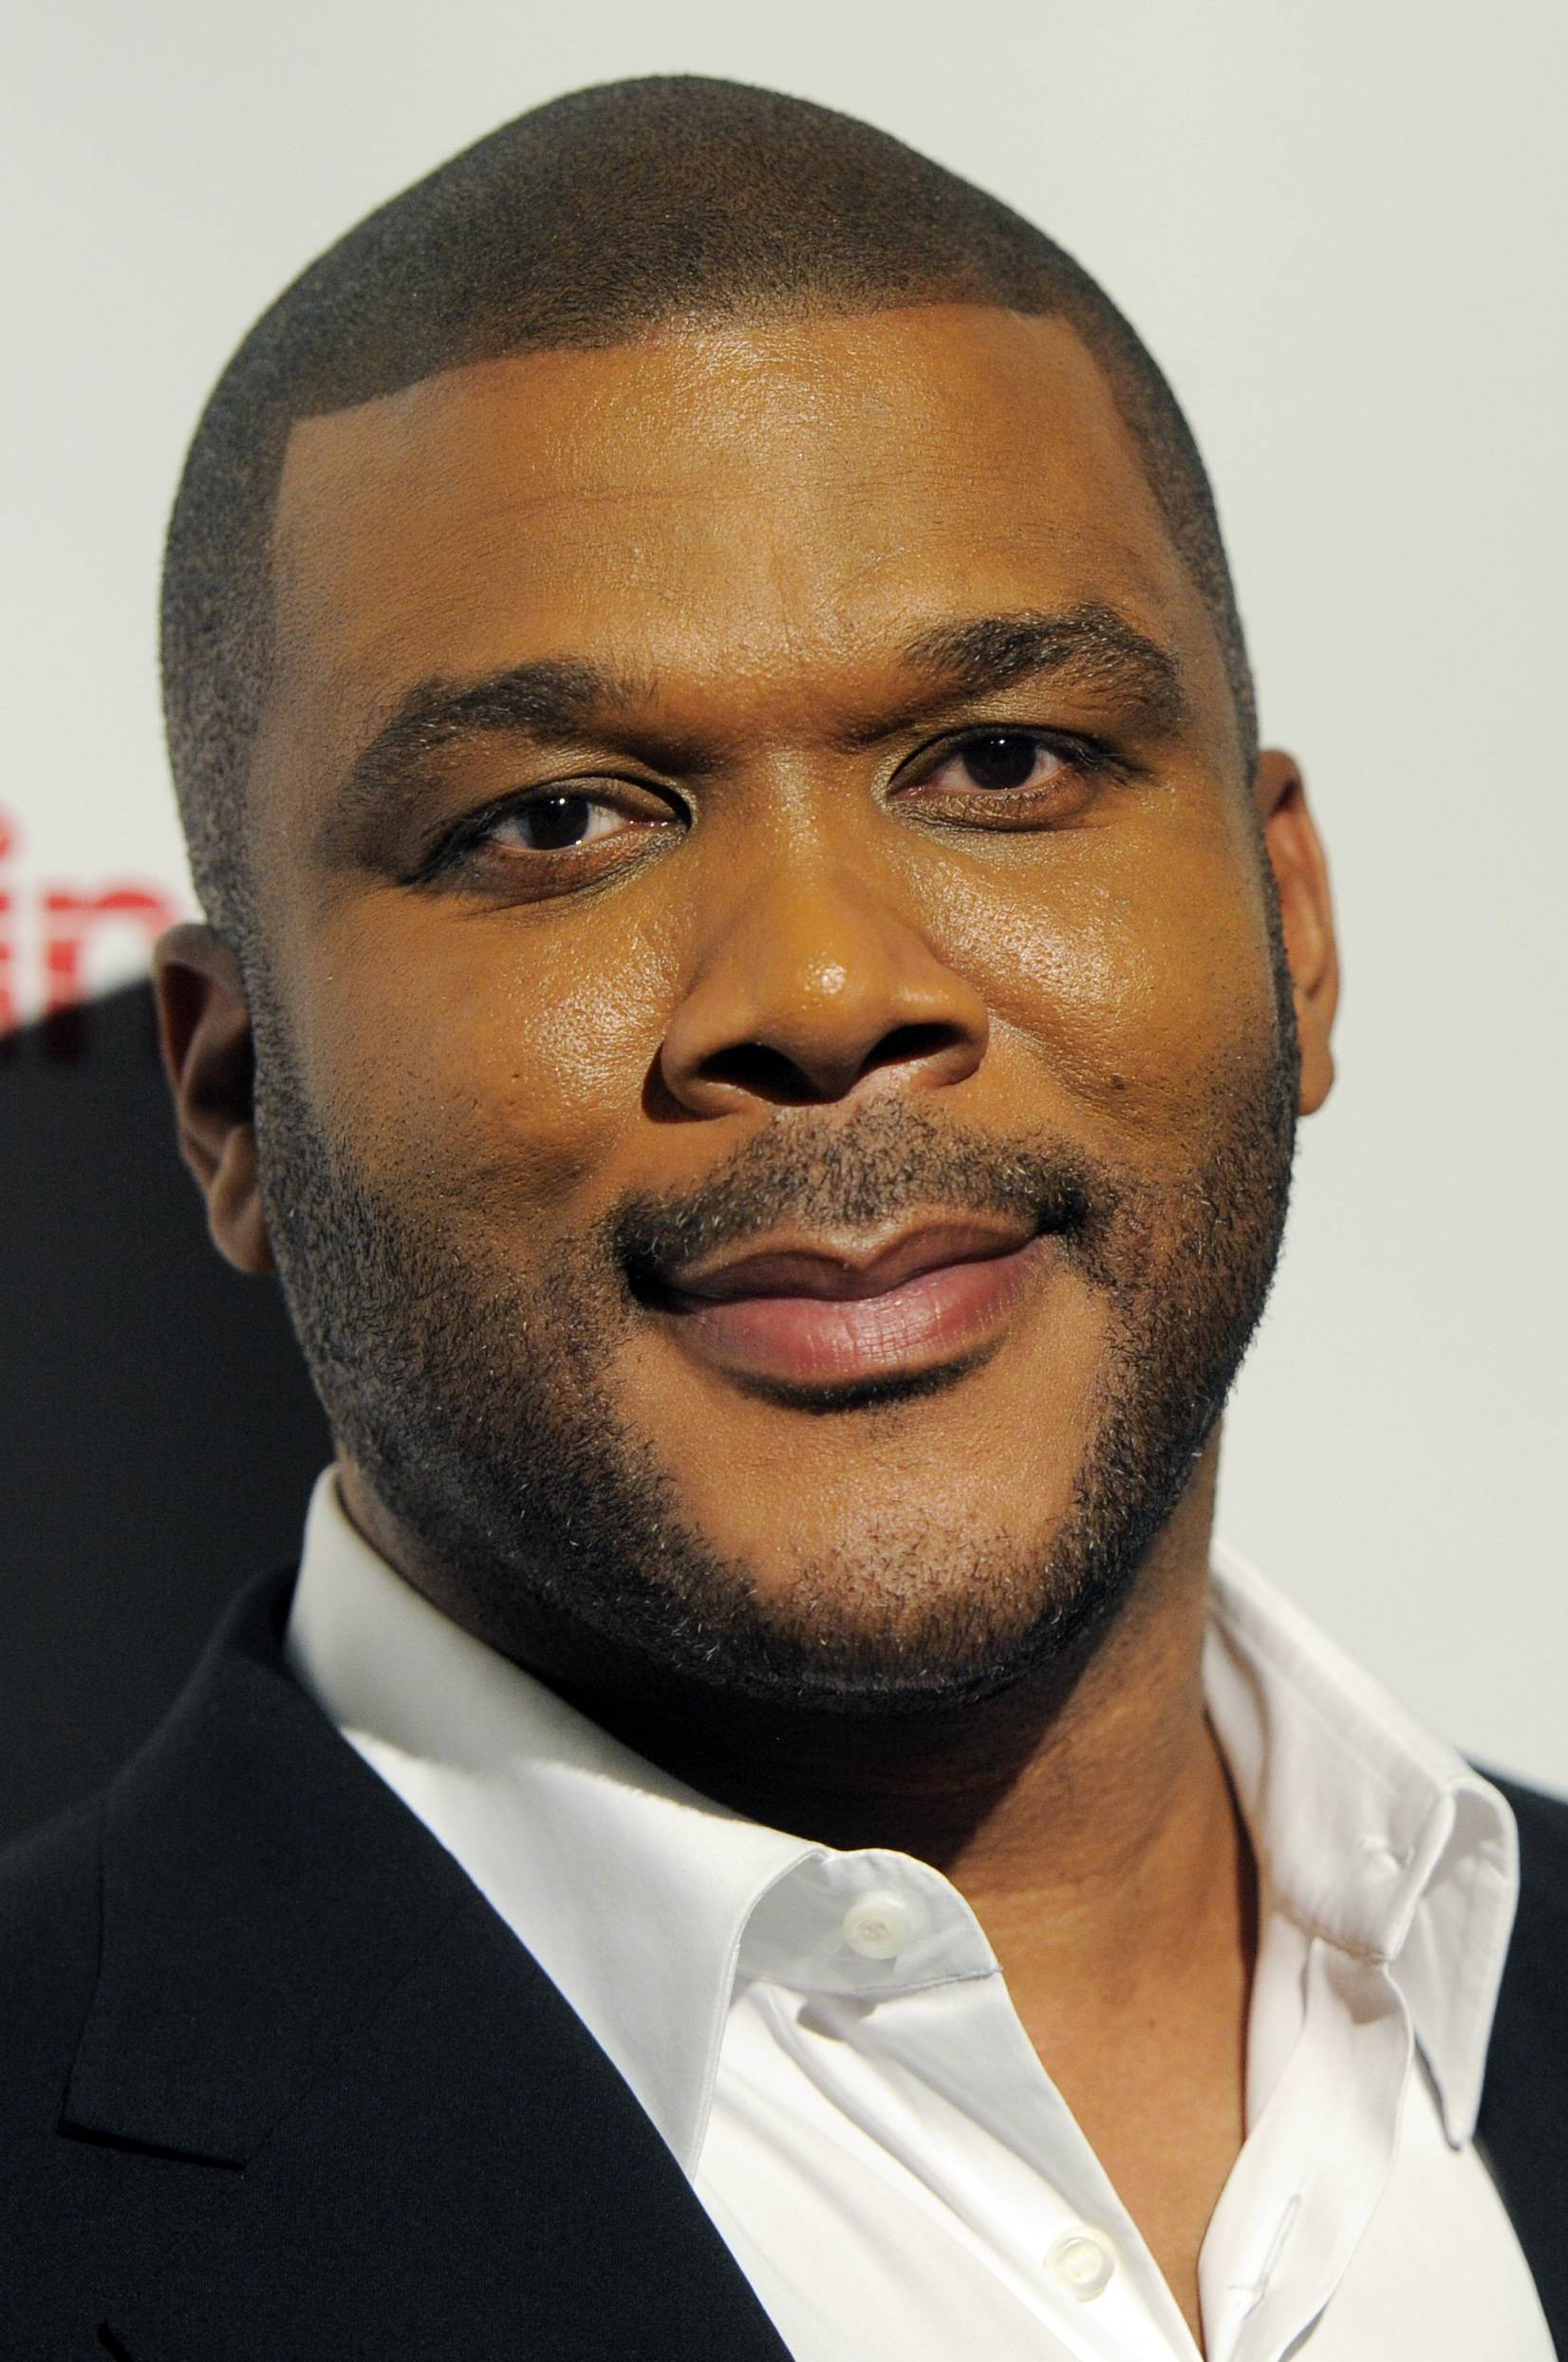 Facts Matter: Tyler Perry says social media giveaways in his name are fake